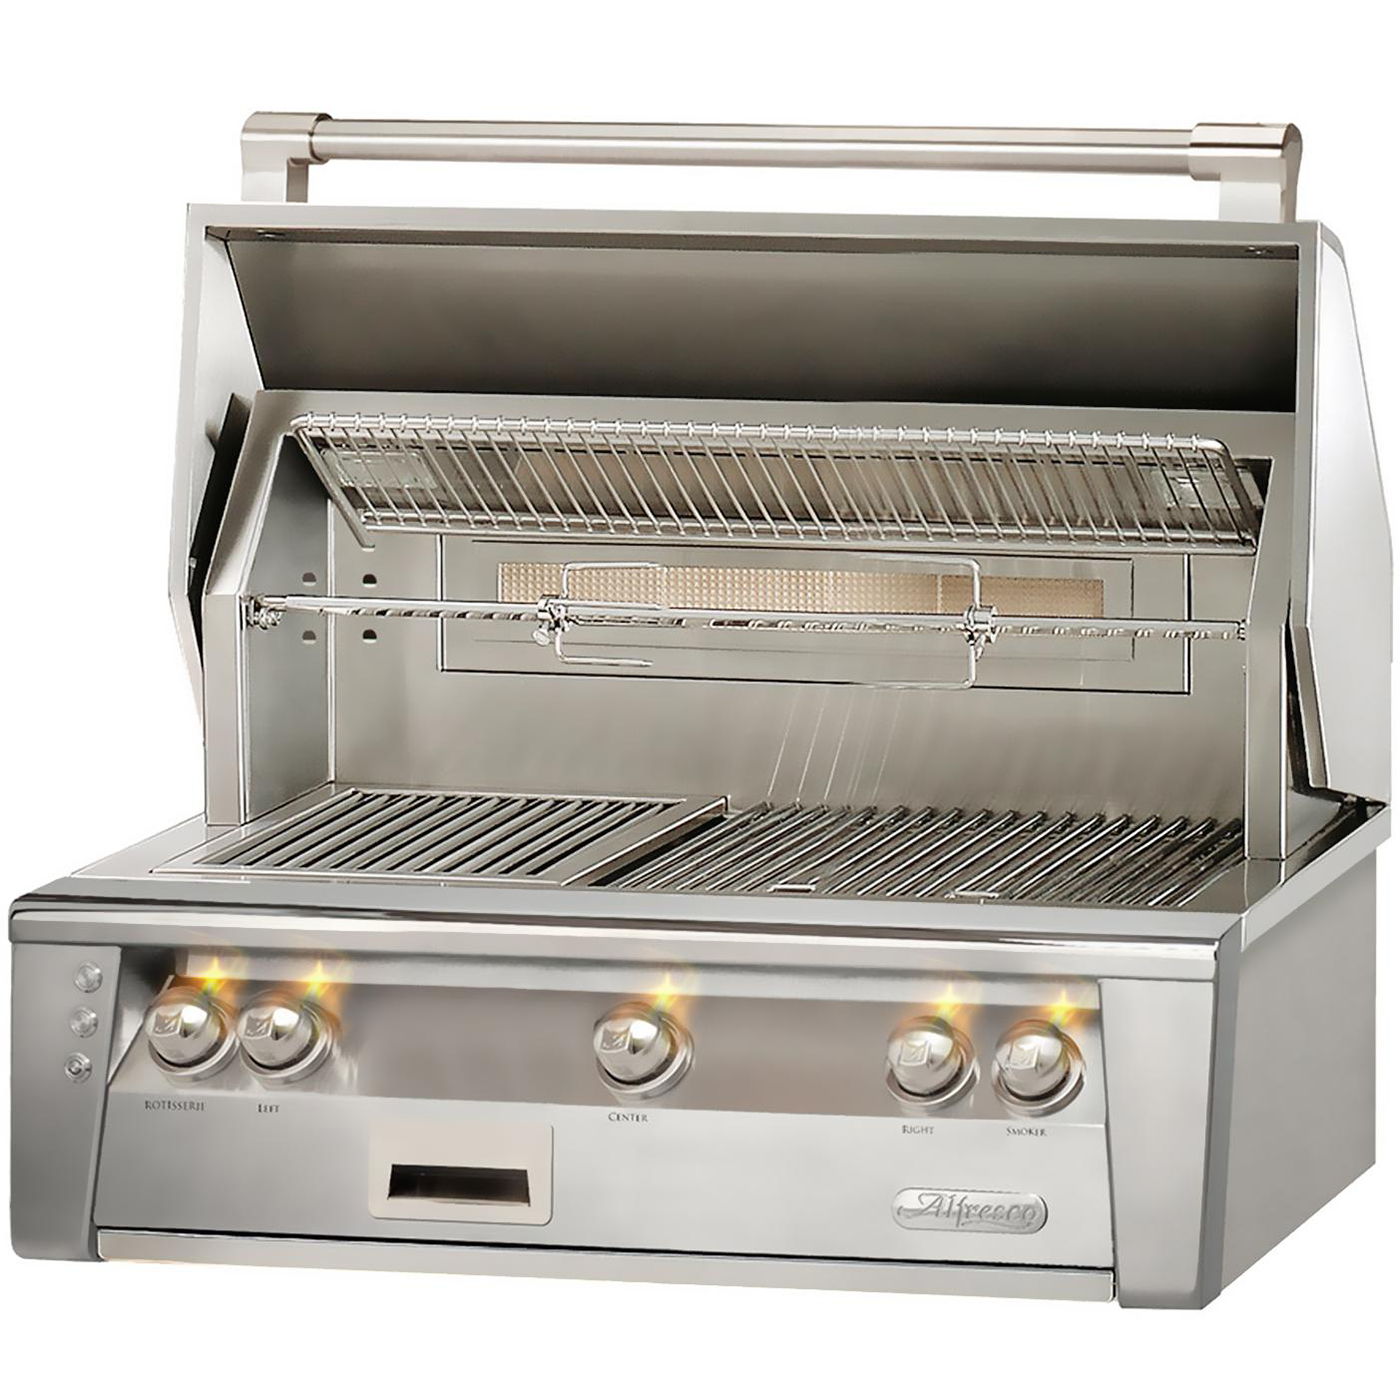 "36"" Alfresco ALXE Built-In Gas Grill w/ Sear Zone & Rotisserie, Natural Gas"